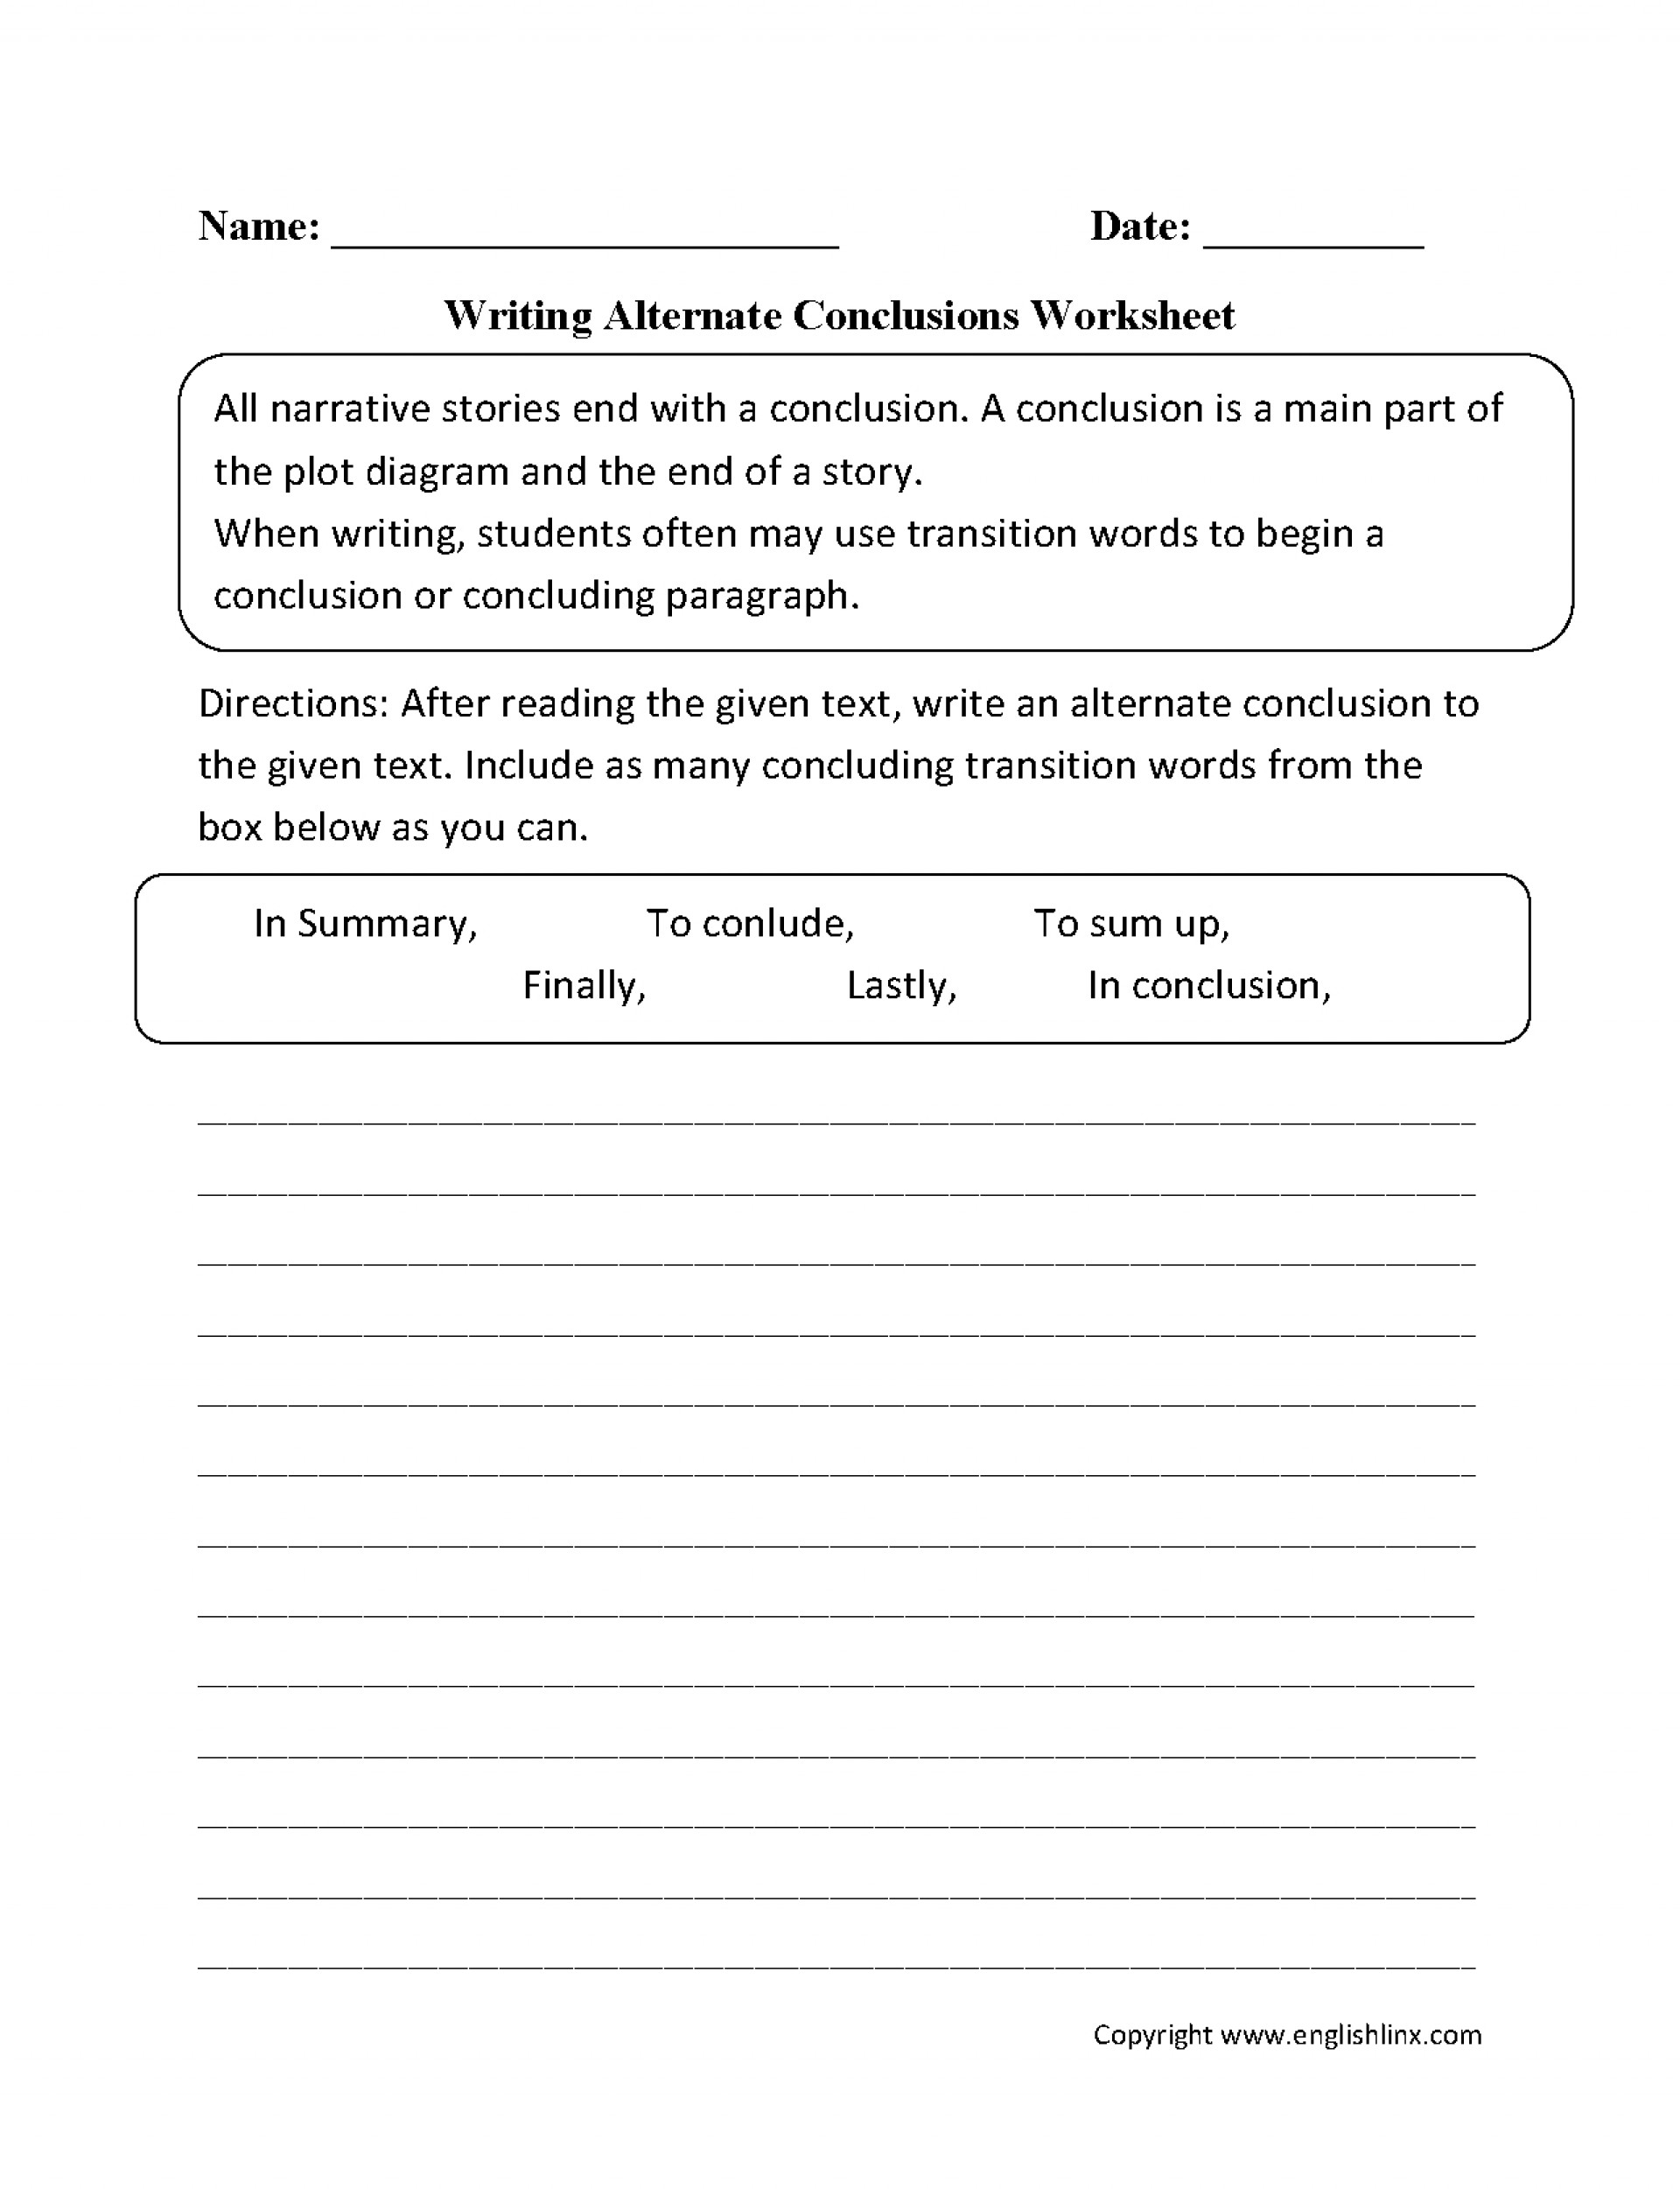 027 Englishlinx Writing Conclusions Worksheets Pertaining To Conclusion Paragraph Examples 5th Grade Research Impressive High School Example For Persuasive Essay Essays 1920